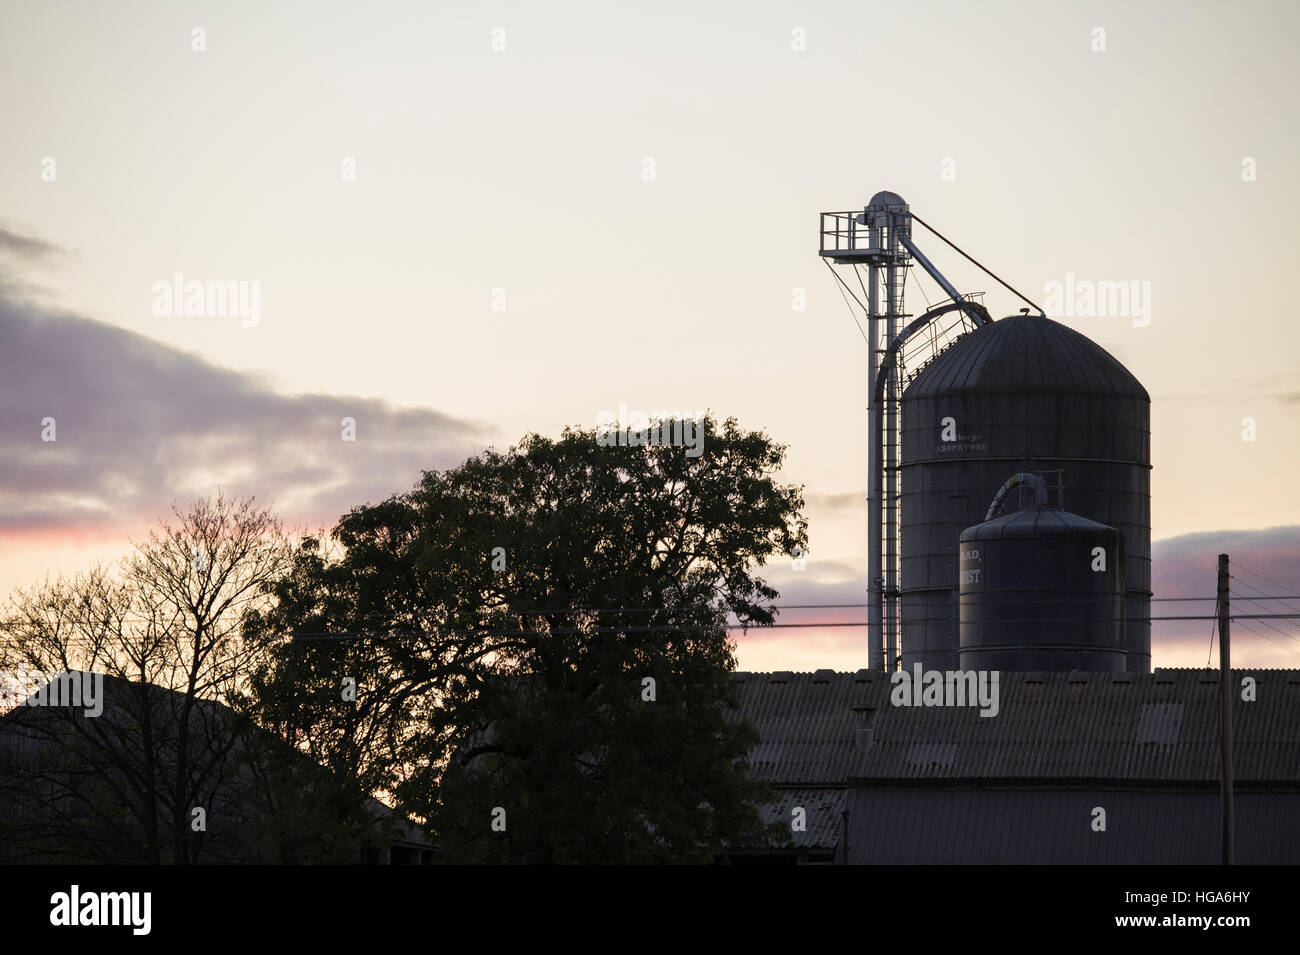 Rooftops of farm buildings and a tower silo for storing grain, silhouetted against the evening sky - Yorkshire, - Stock Image